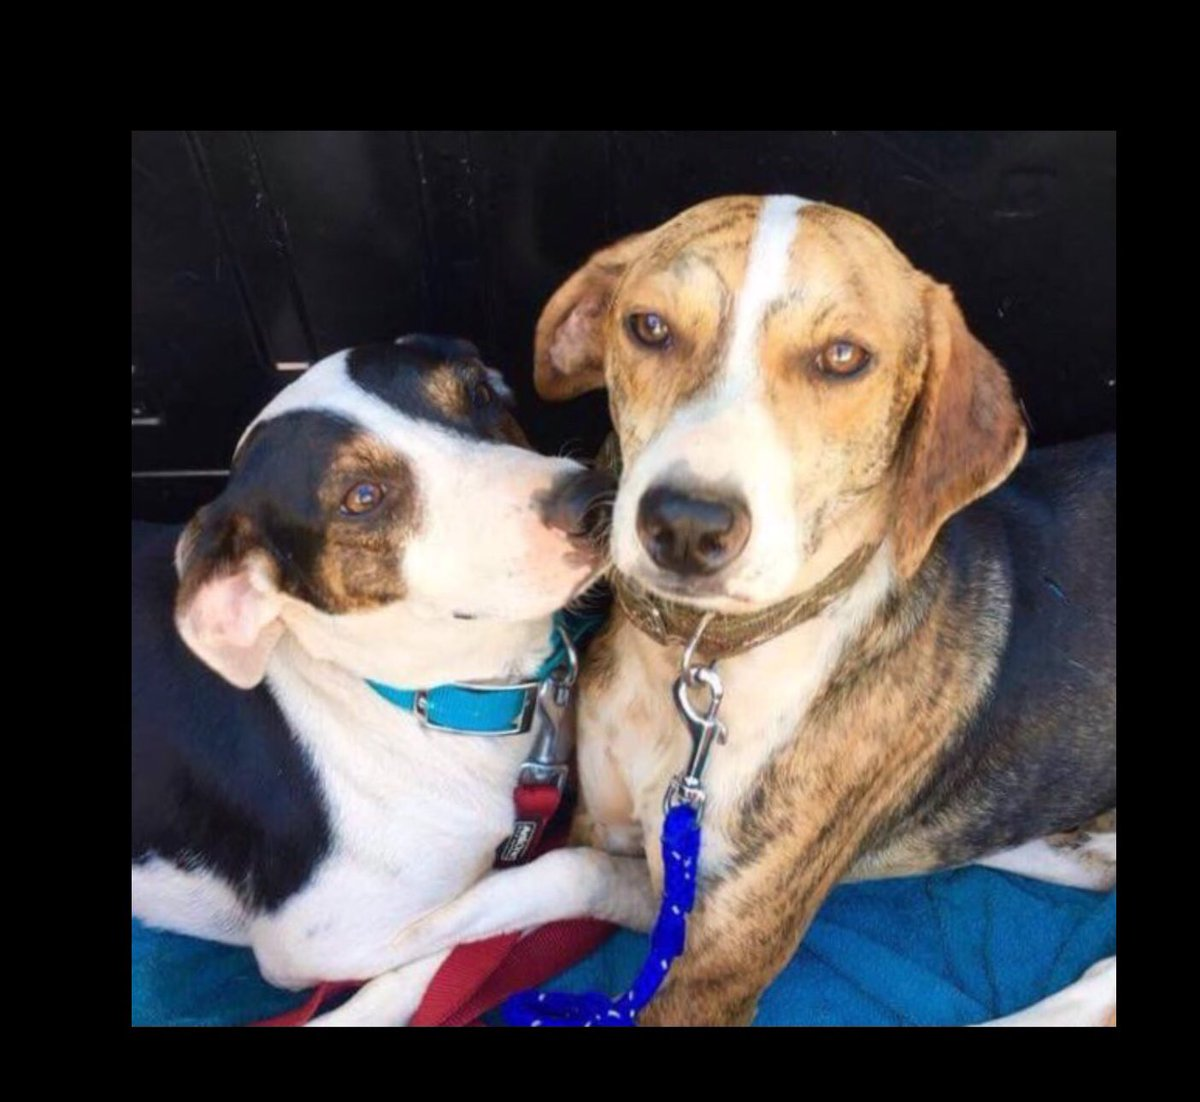 Devoted brother &amp; sister (Donald/Donatella) are so loving! They love people too, yet it's so hard to find a home together!Could you help them together and share their love with a special person or family?  #ADOPT in #U.K. #Germany #Holland  #AdoptDontBuy #dogsarefamily #dog<br>http://pic.twitter.com/HnTXJy318z